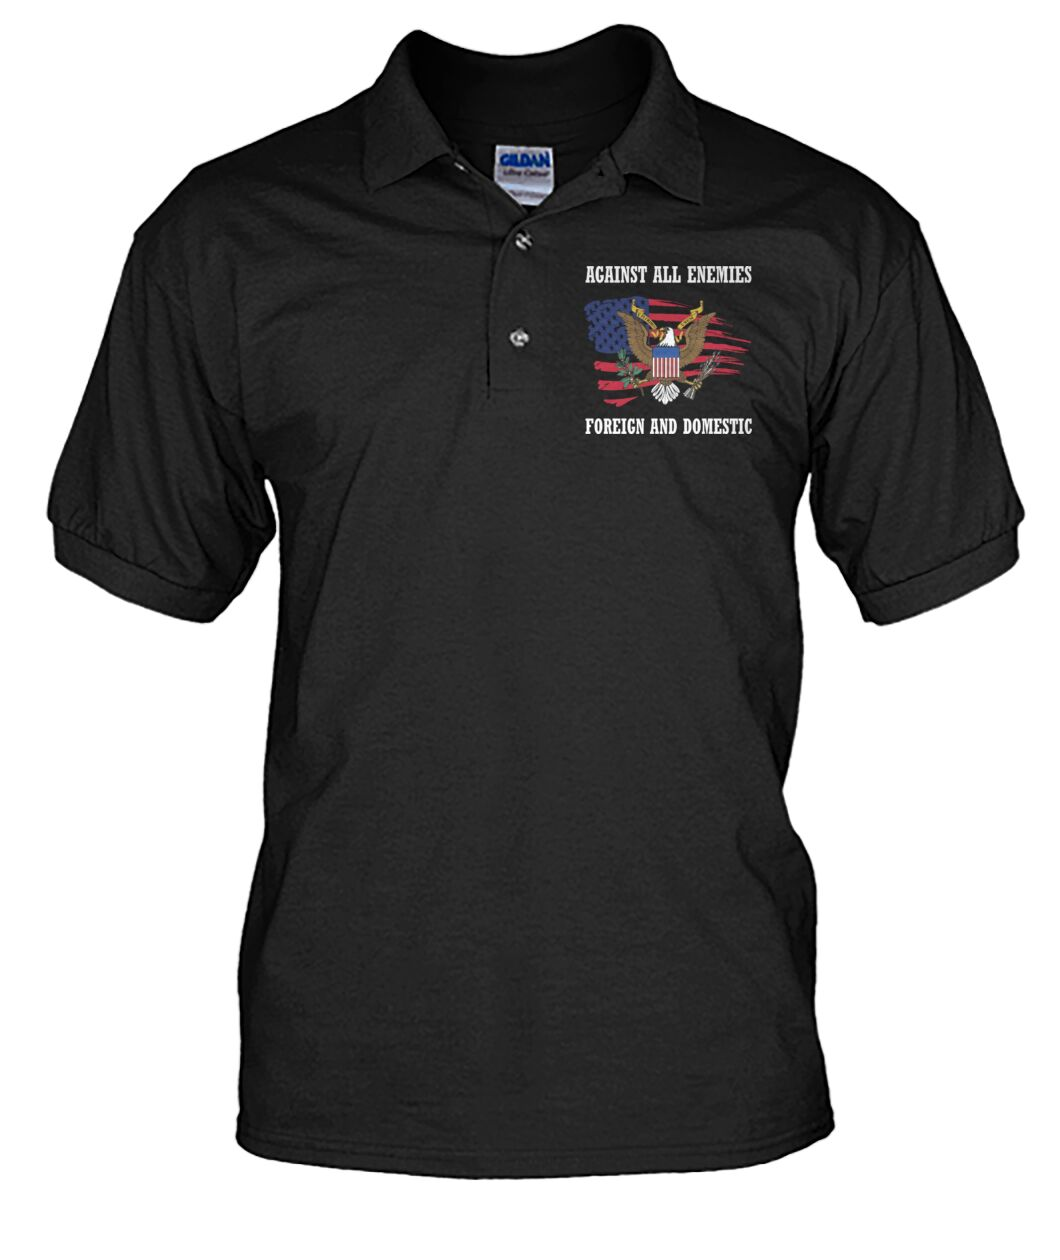 American Eagle Against All Enemies Foreign And Domestic Polo Shirt